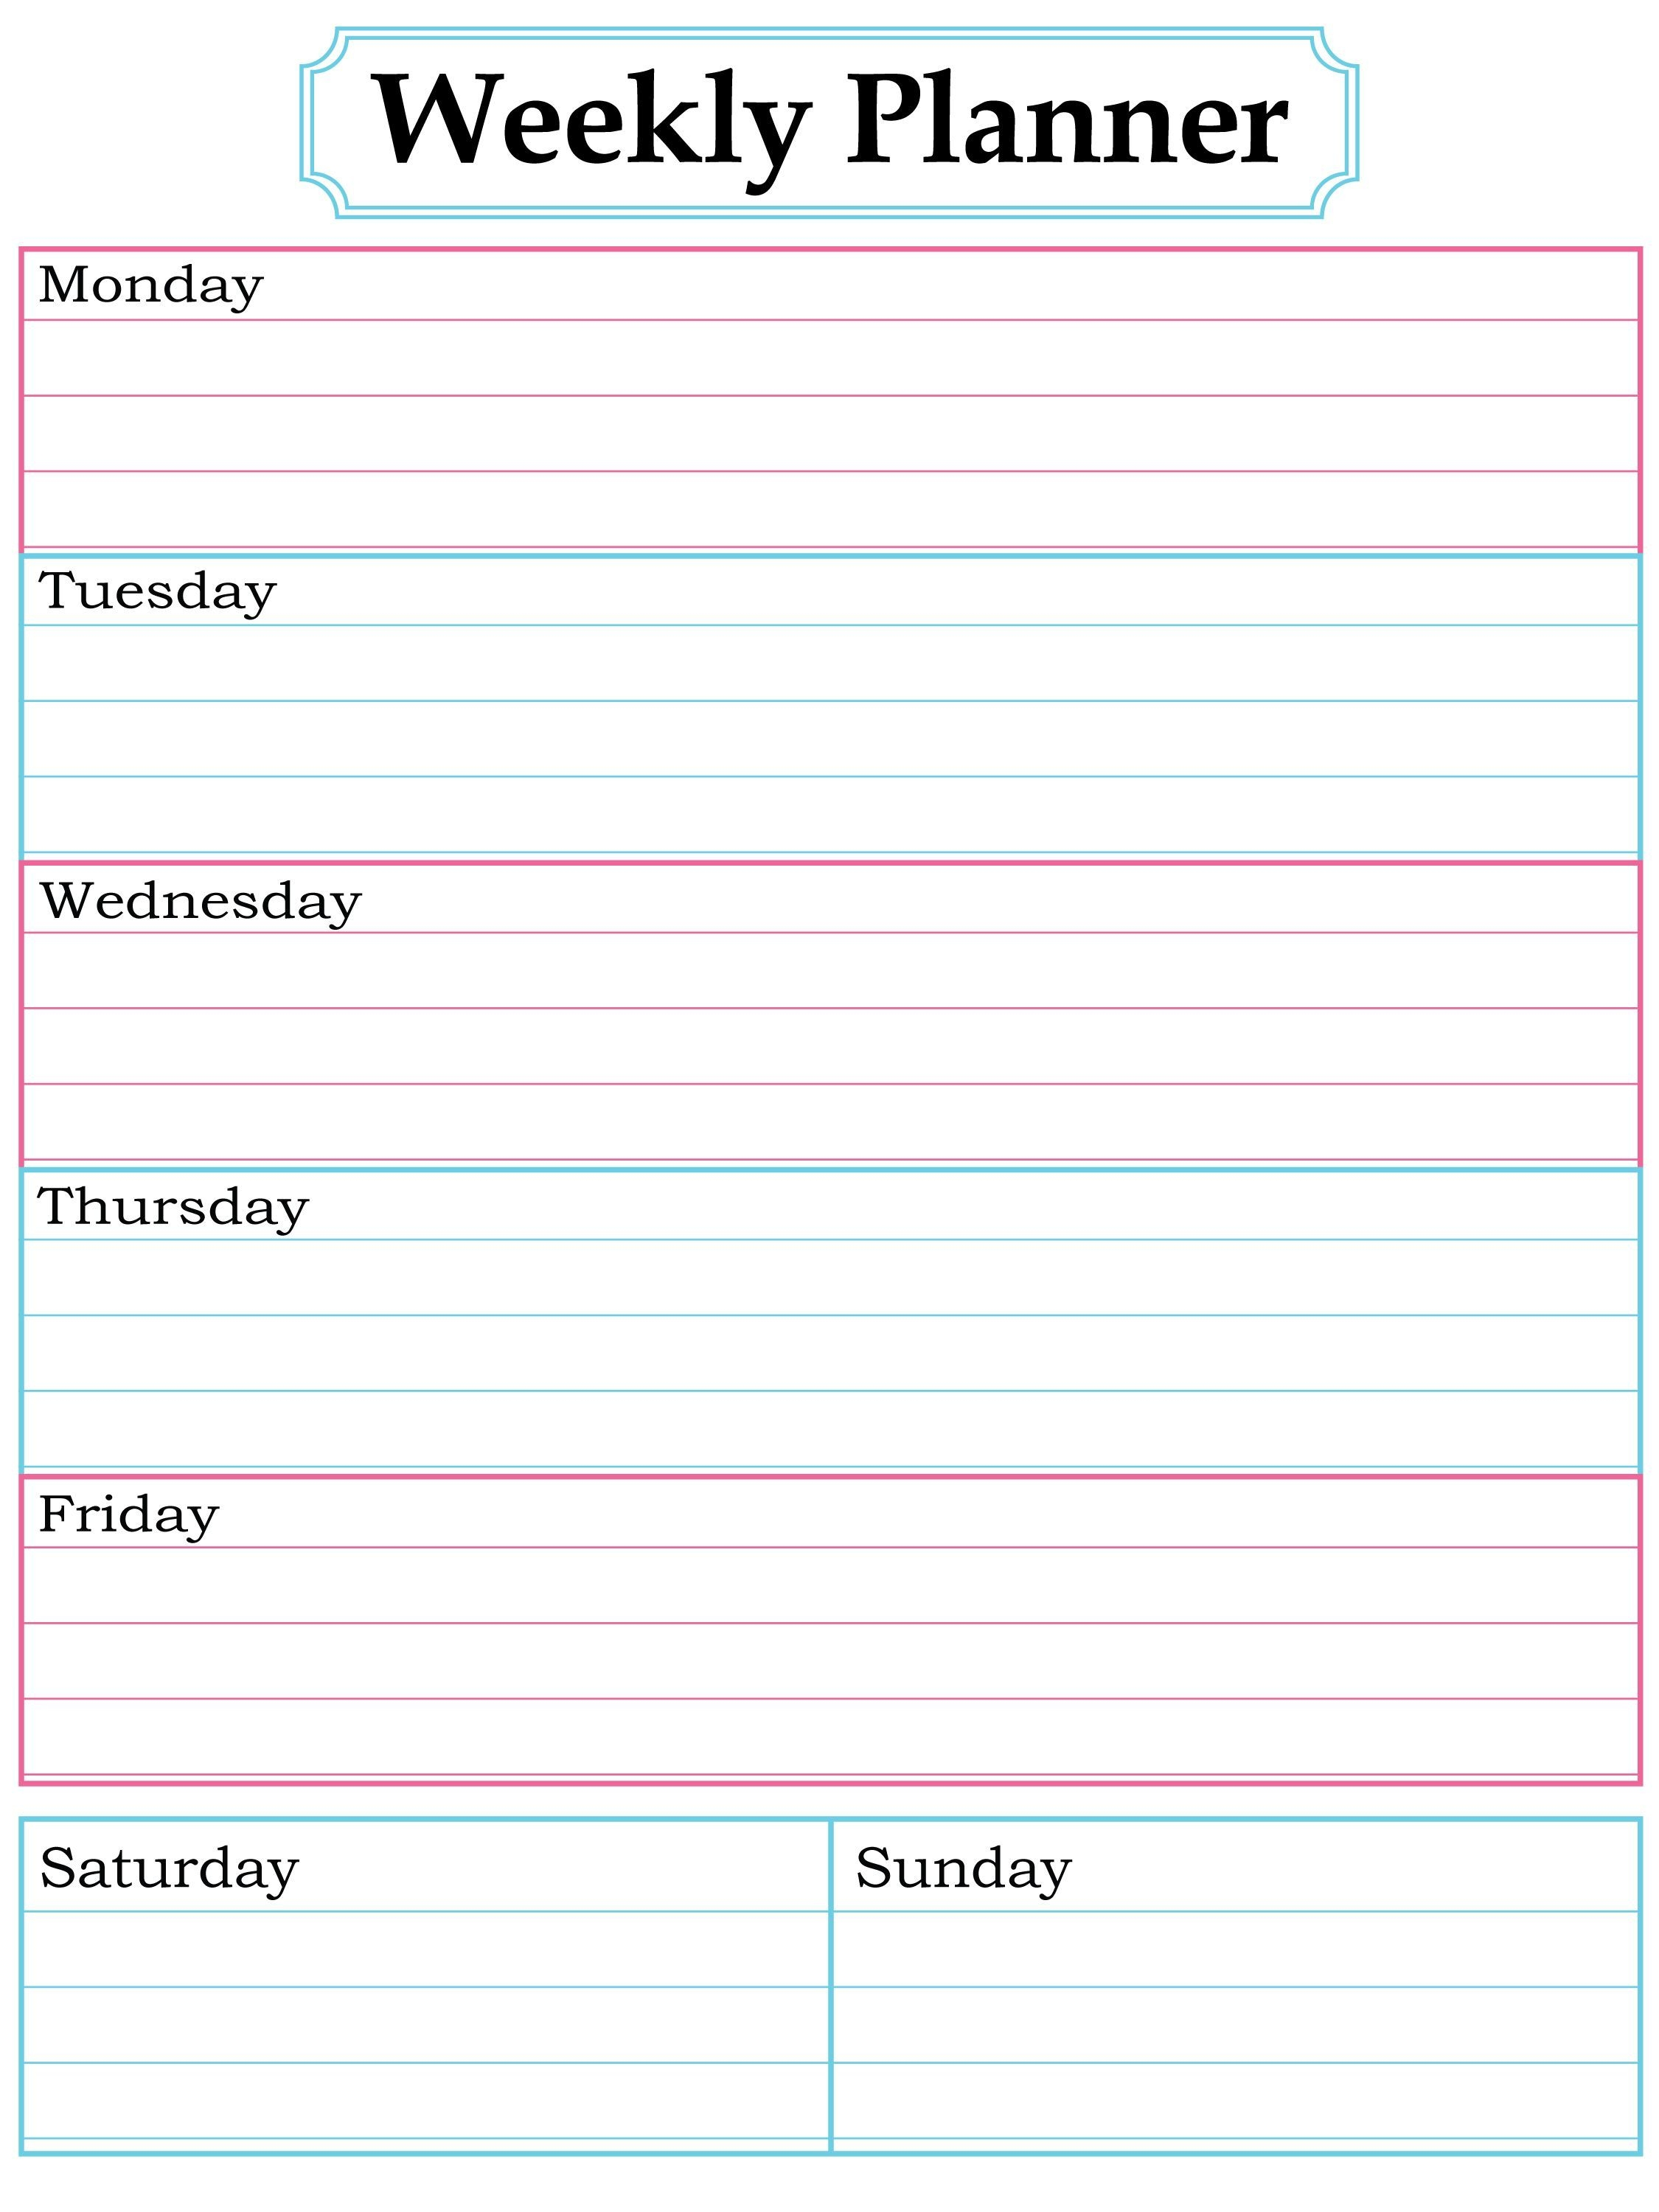 Weekly Planner Page (With Images) | Weekly Planner Template